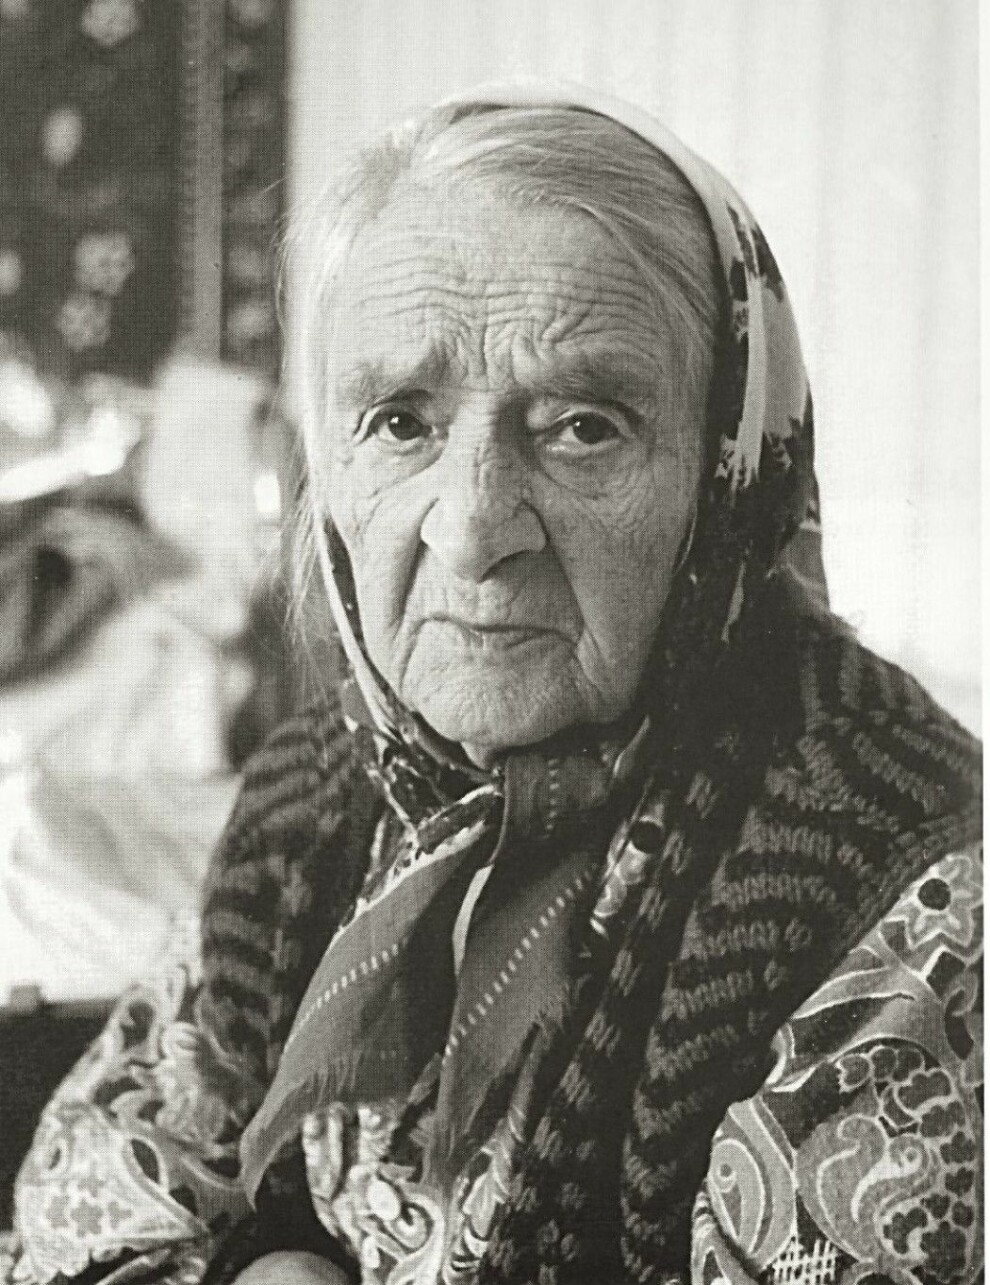 """Nelly Berger lost a little boy in Tarza, but managed to save the lives of her other three children. In addition, she took care of a foster child. When Morten Jentoft met her in Karelia, she had hardly spoken Norwegian with anyone in 50 years. Still, she remembered the language well: """"I speak to myself and then I have an old hymn book from my mother,"""" she told him just weeks before her death in 1993."""